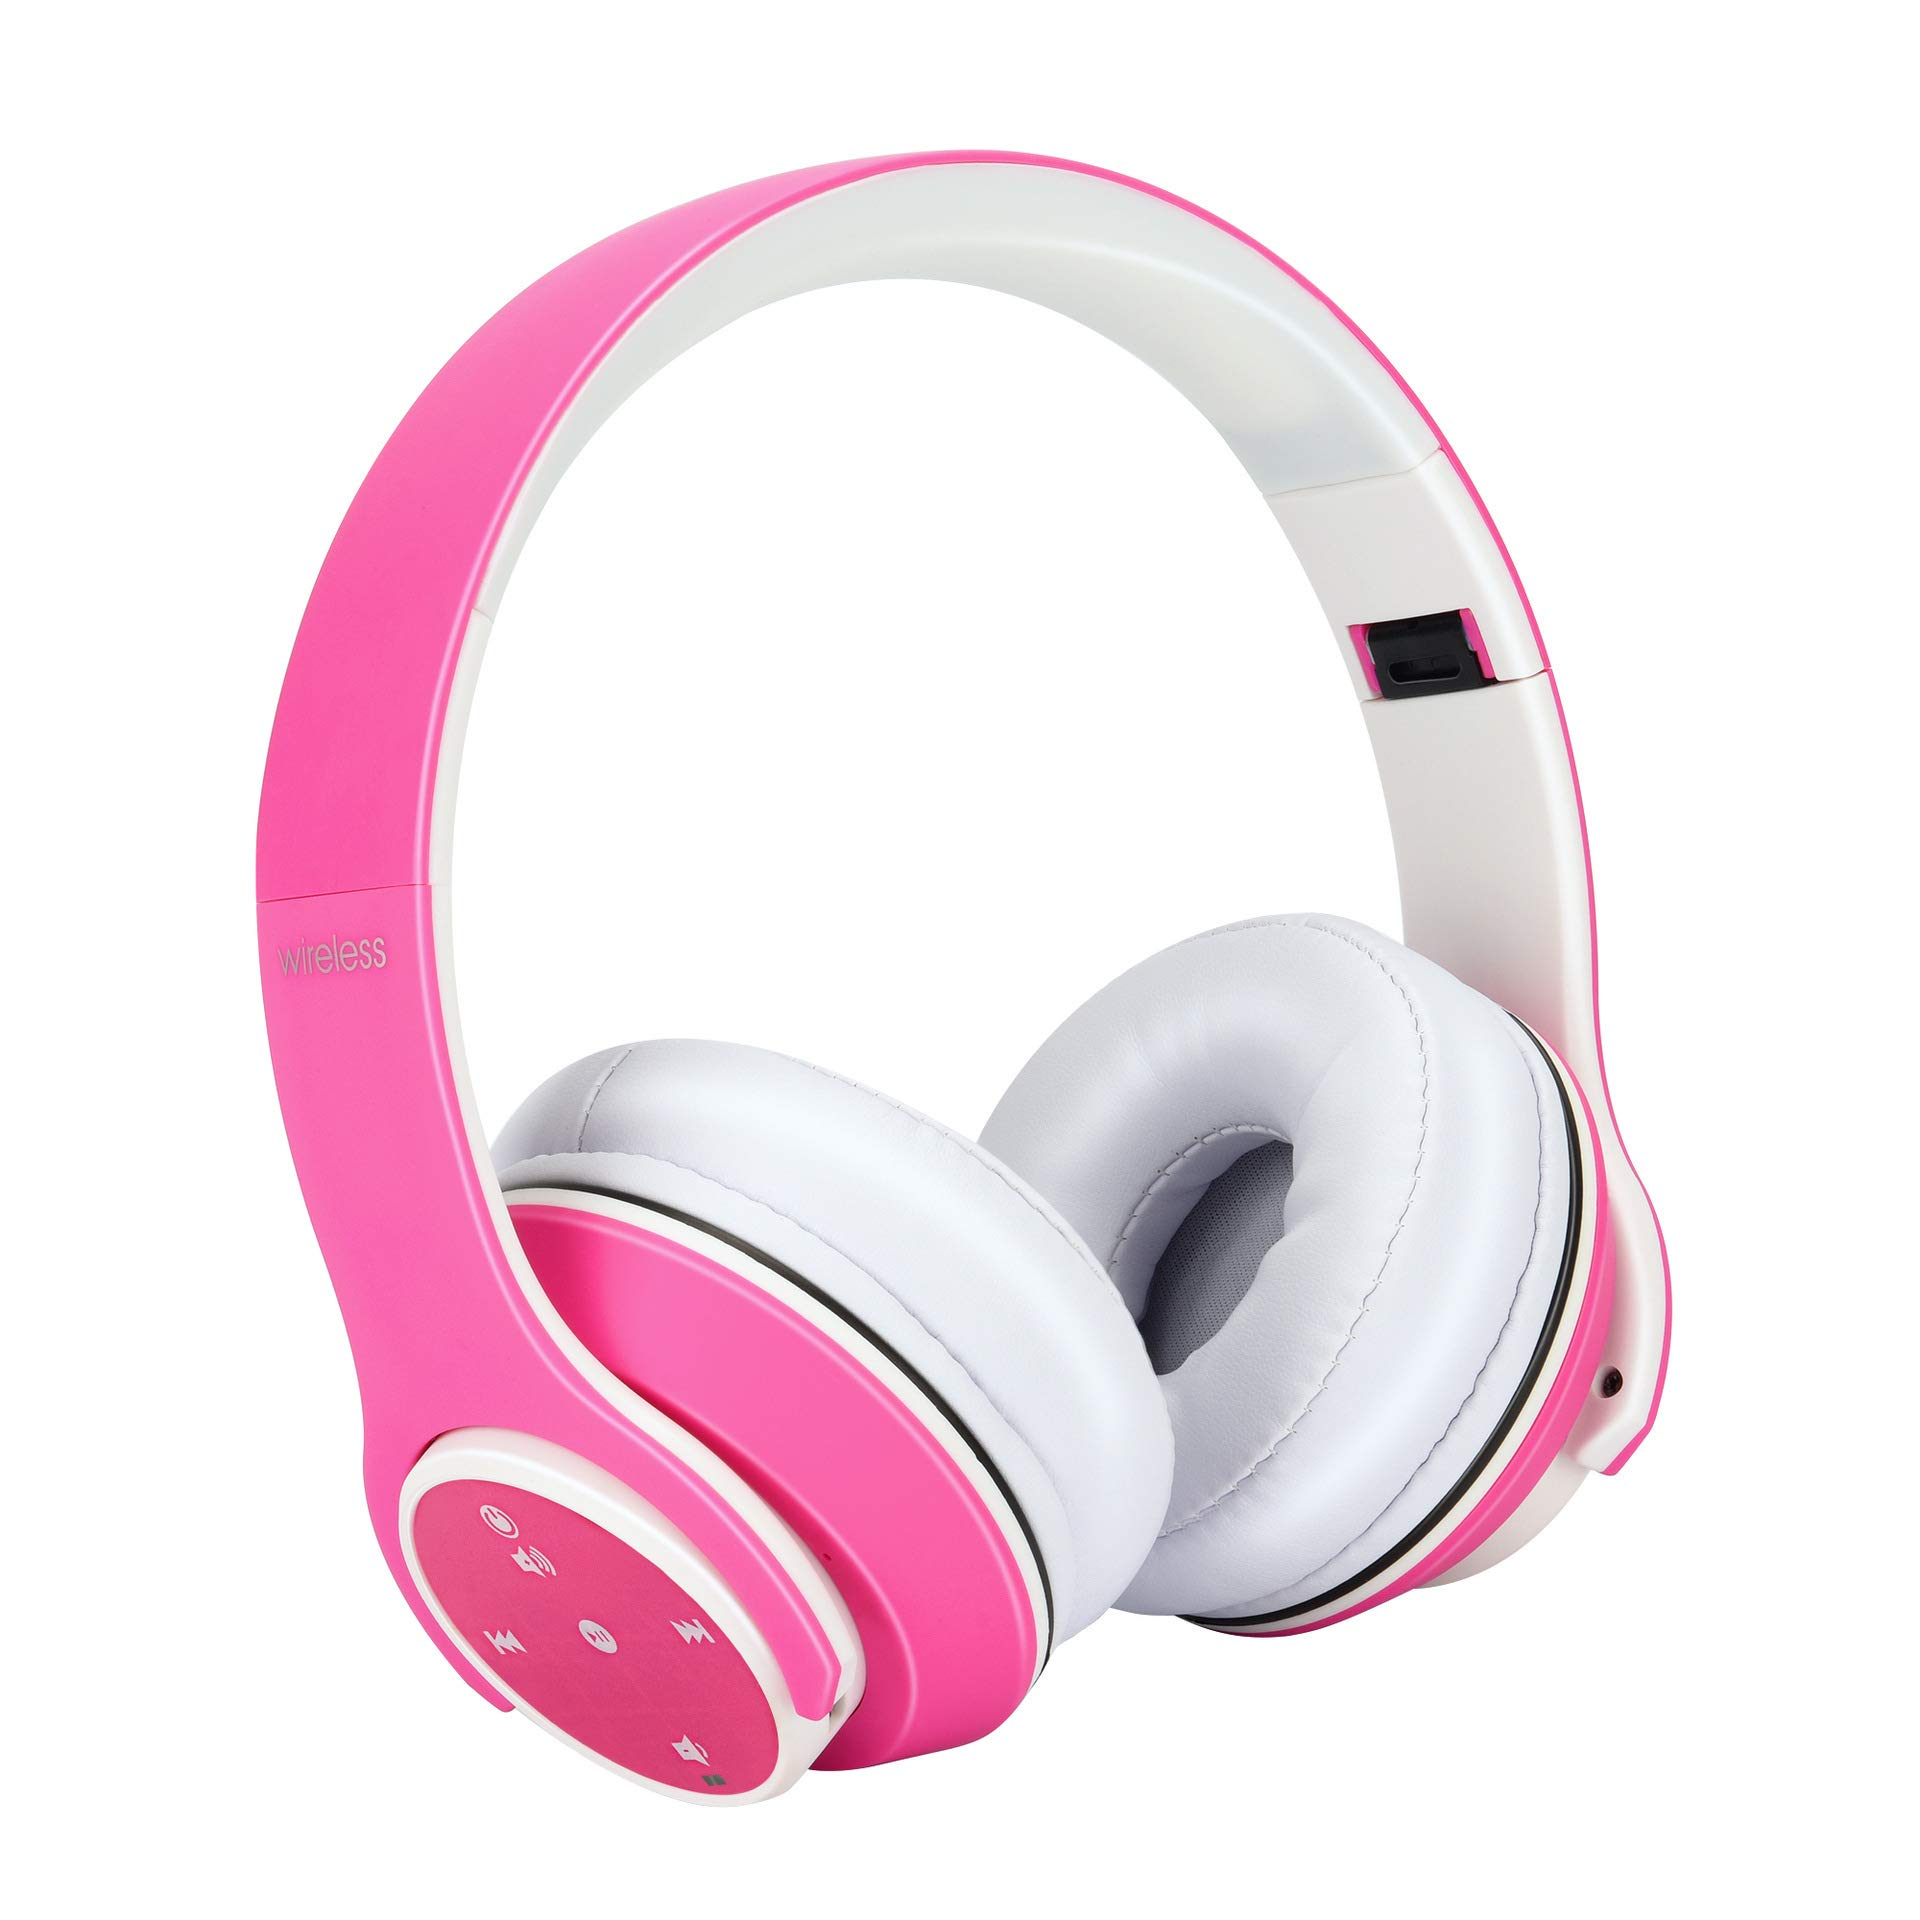 OUYAWEI OY5Plus Wireless Bluetooth Headphones Stereo Music Headset MP3 Player FM Radio 3.5mm Wired Earphone Hands-free with Mic Pink